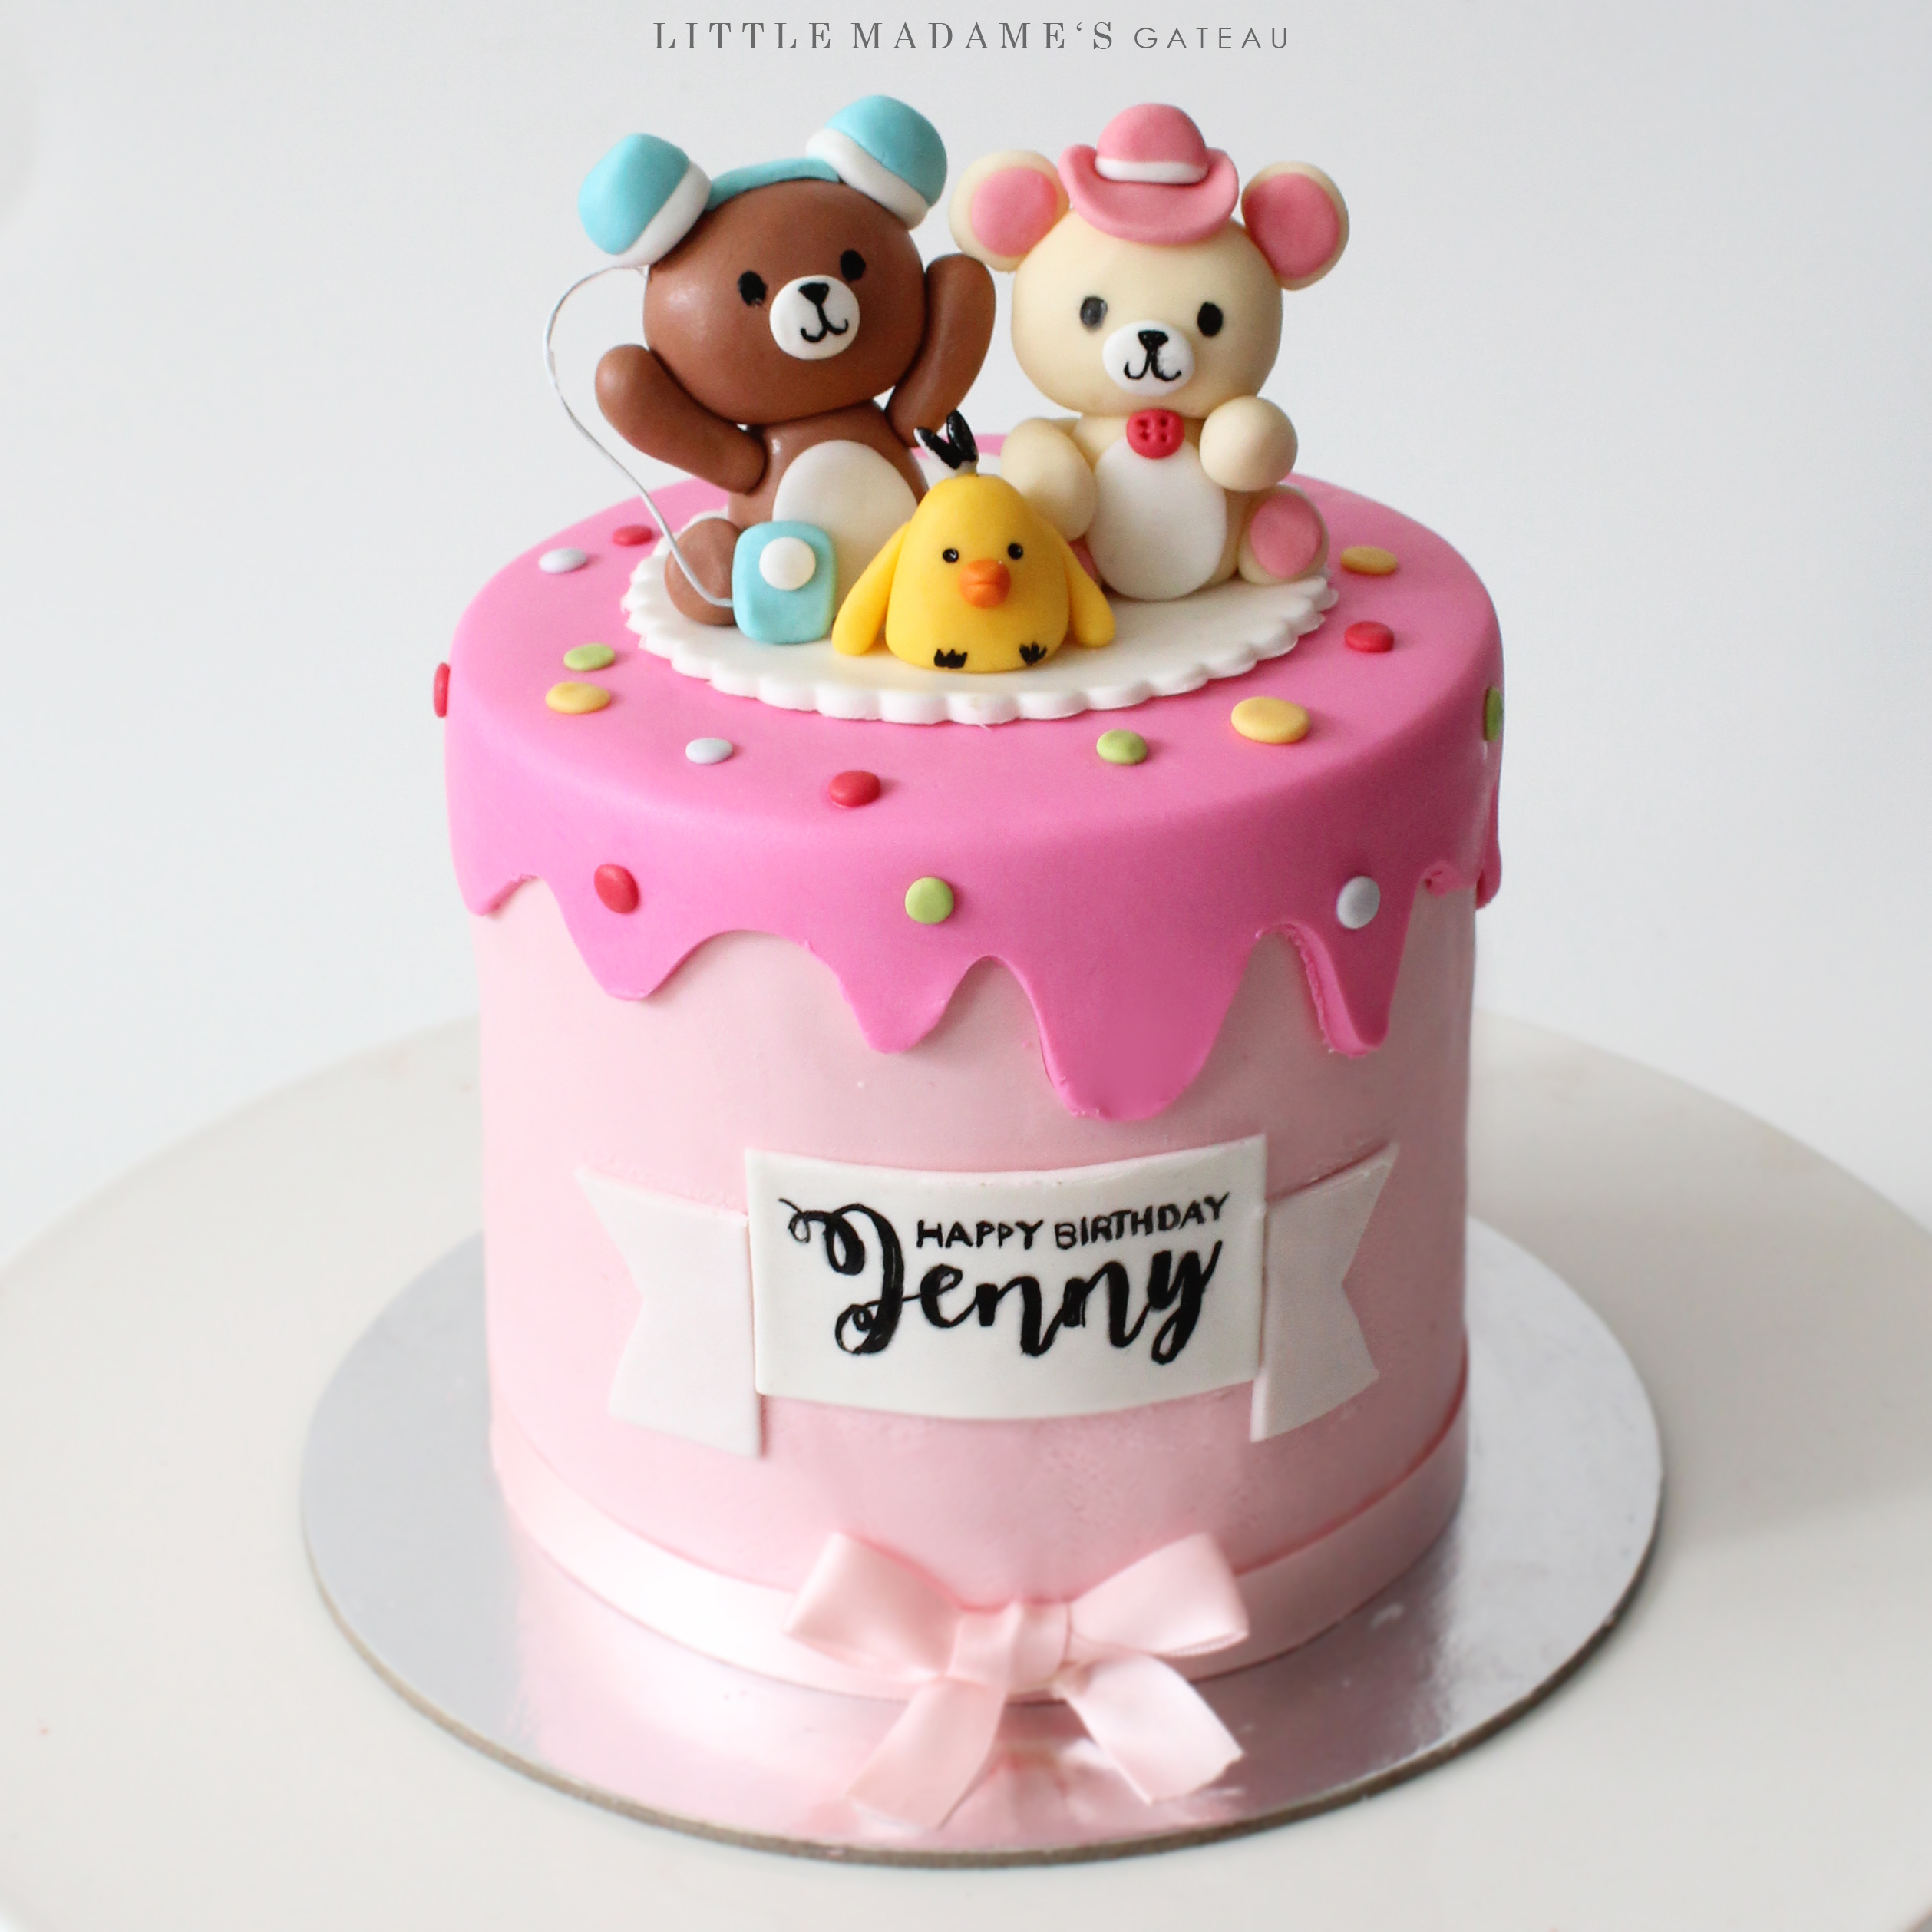 Little teddy bear fondant cake